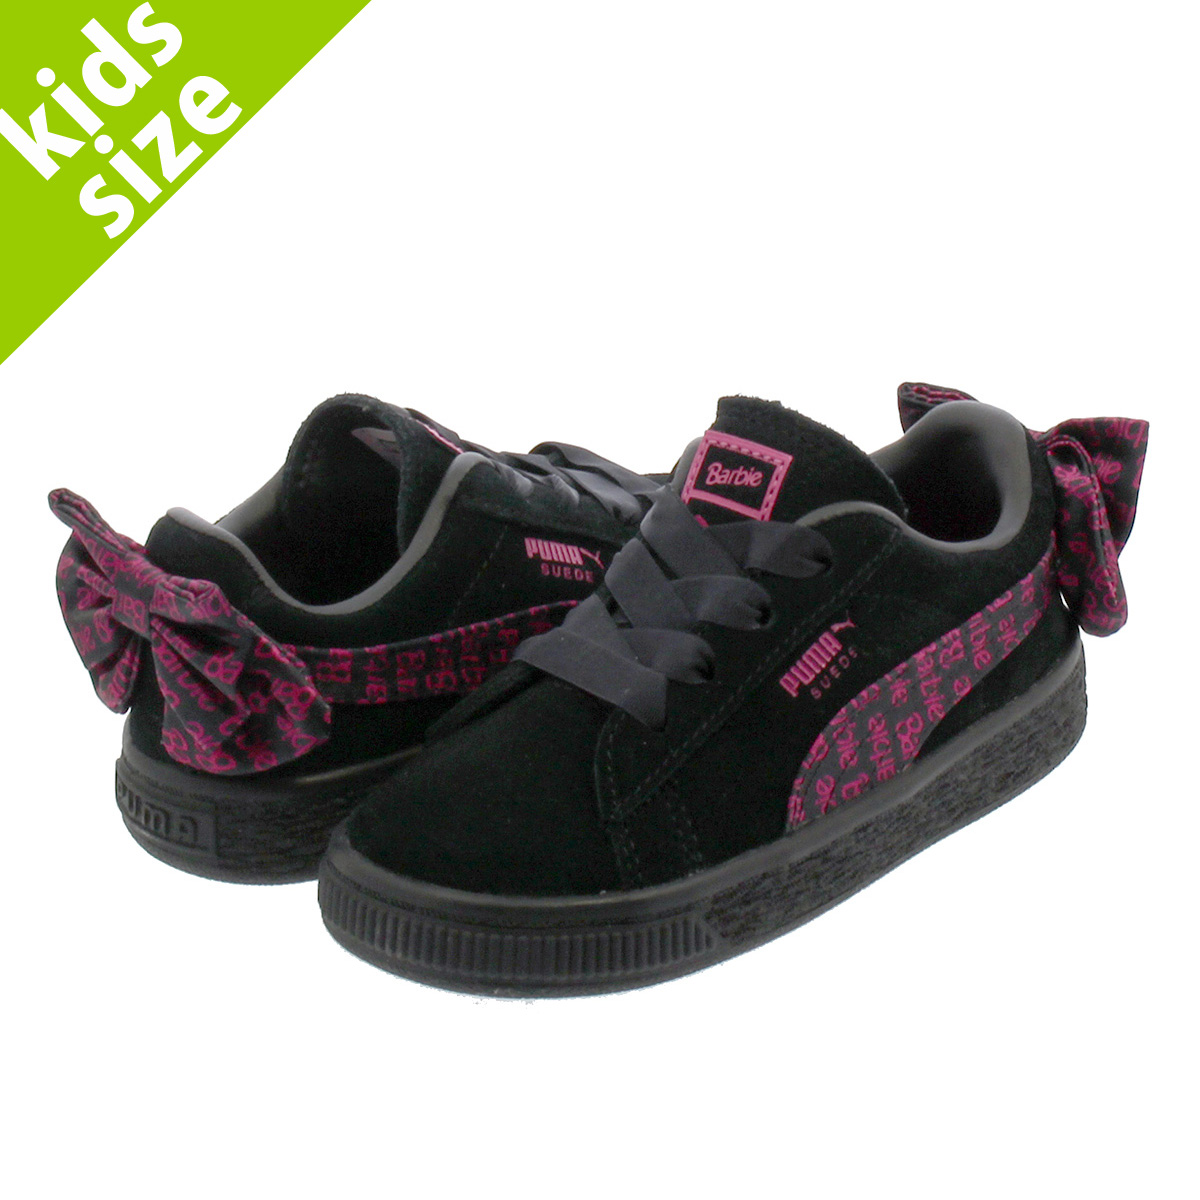 6b256c01a75 PUMA SUEDE CLASSIC X BARBIENODOLL I Puma suede cloth classical music Barbie  PUMA BLACK 366